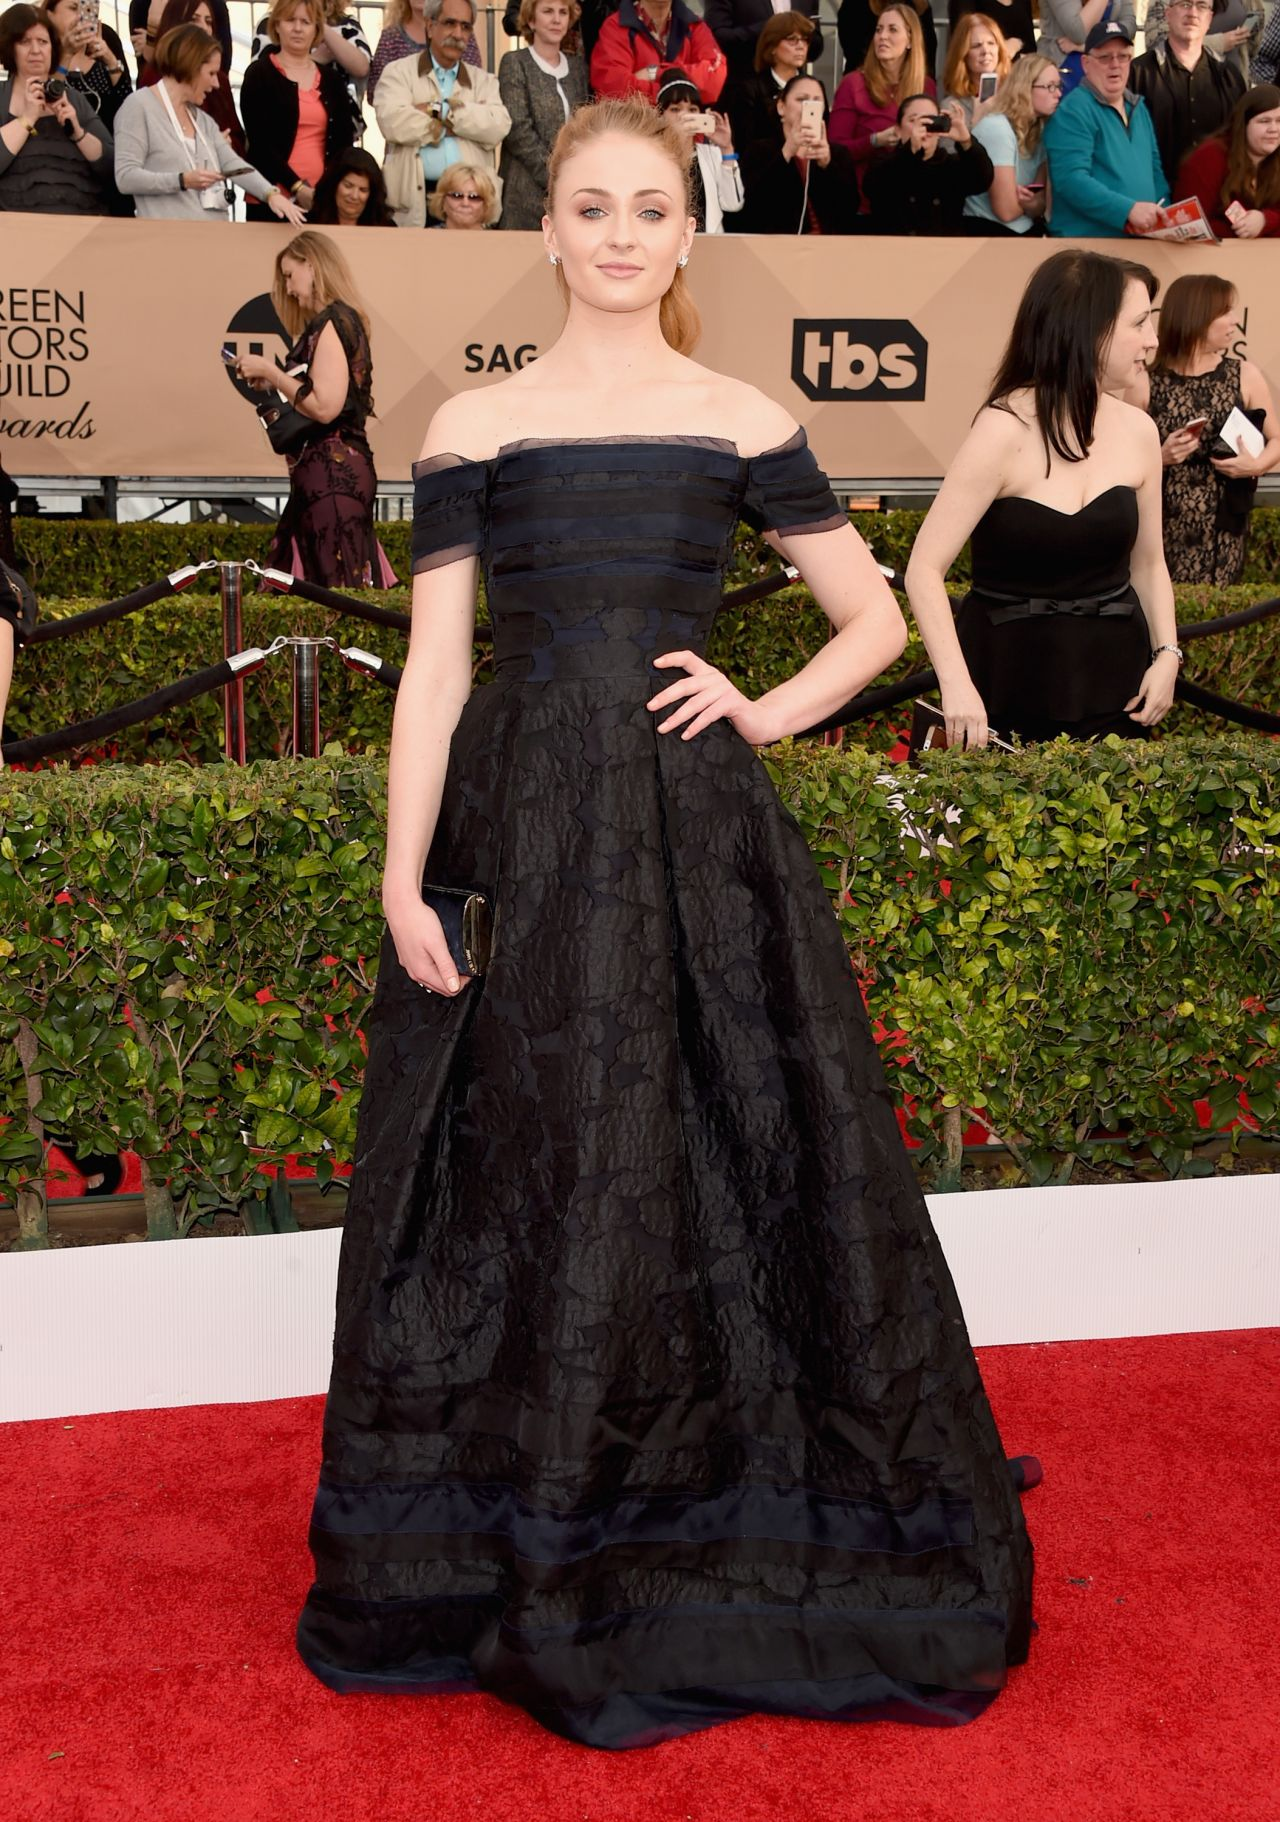 sophie-turner-sag-awards-2016-at-shrine-auditorium-in-los-angeles-1